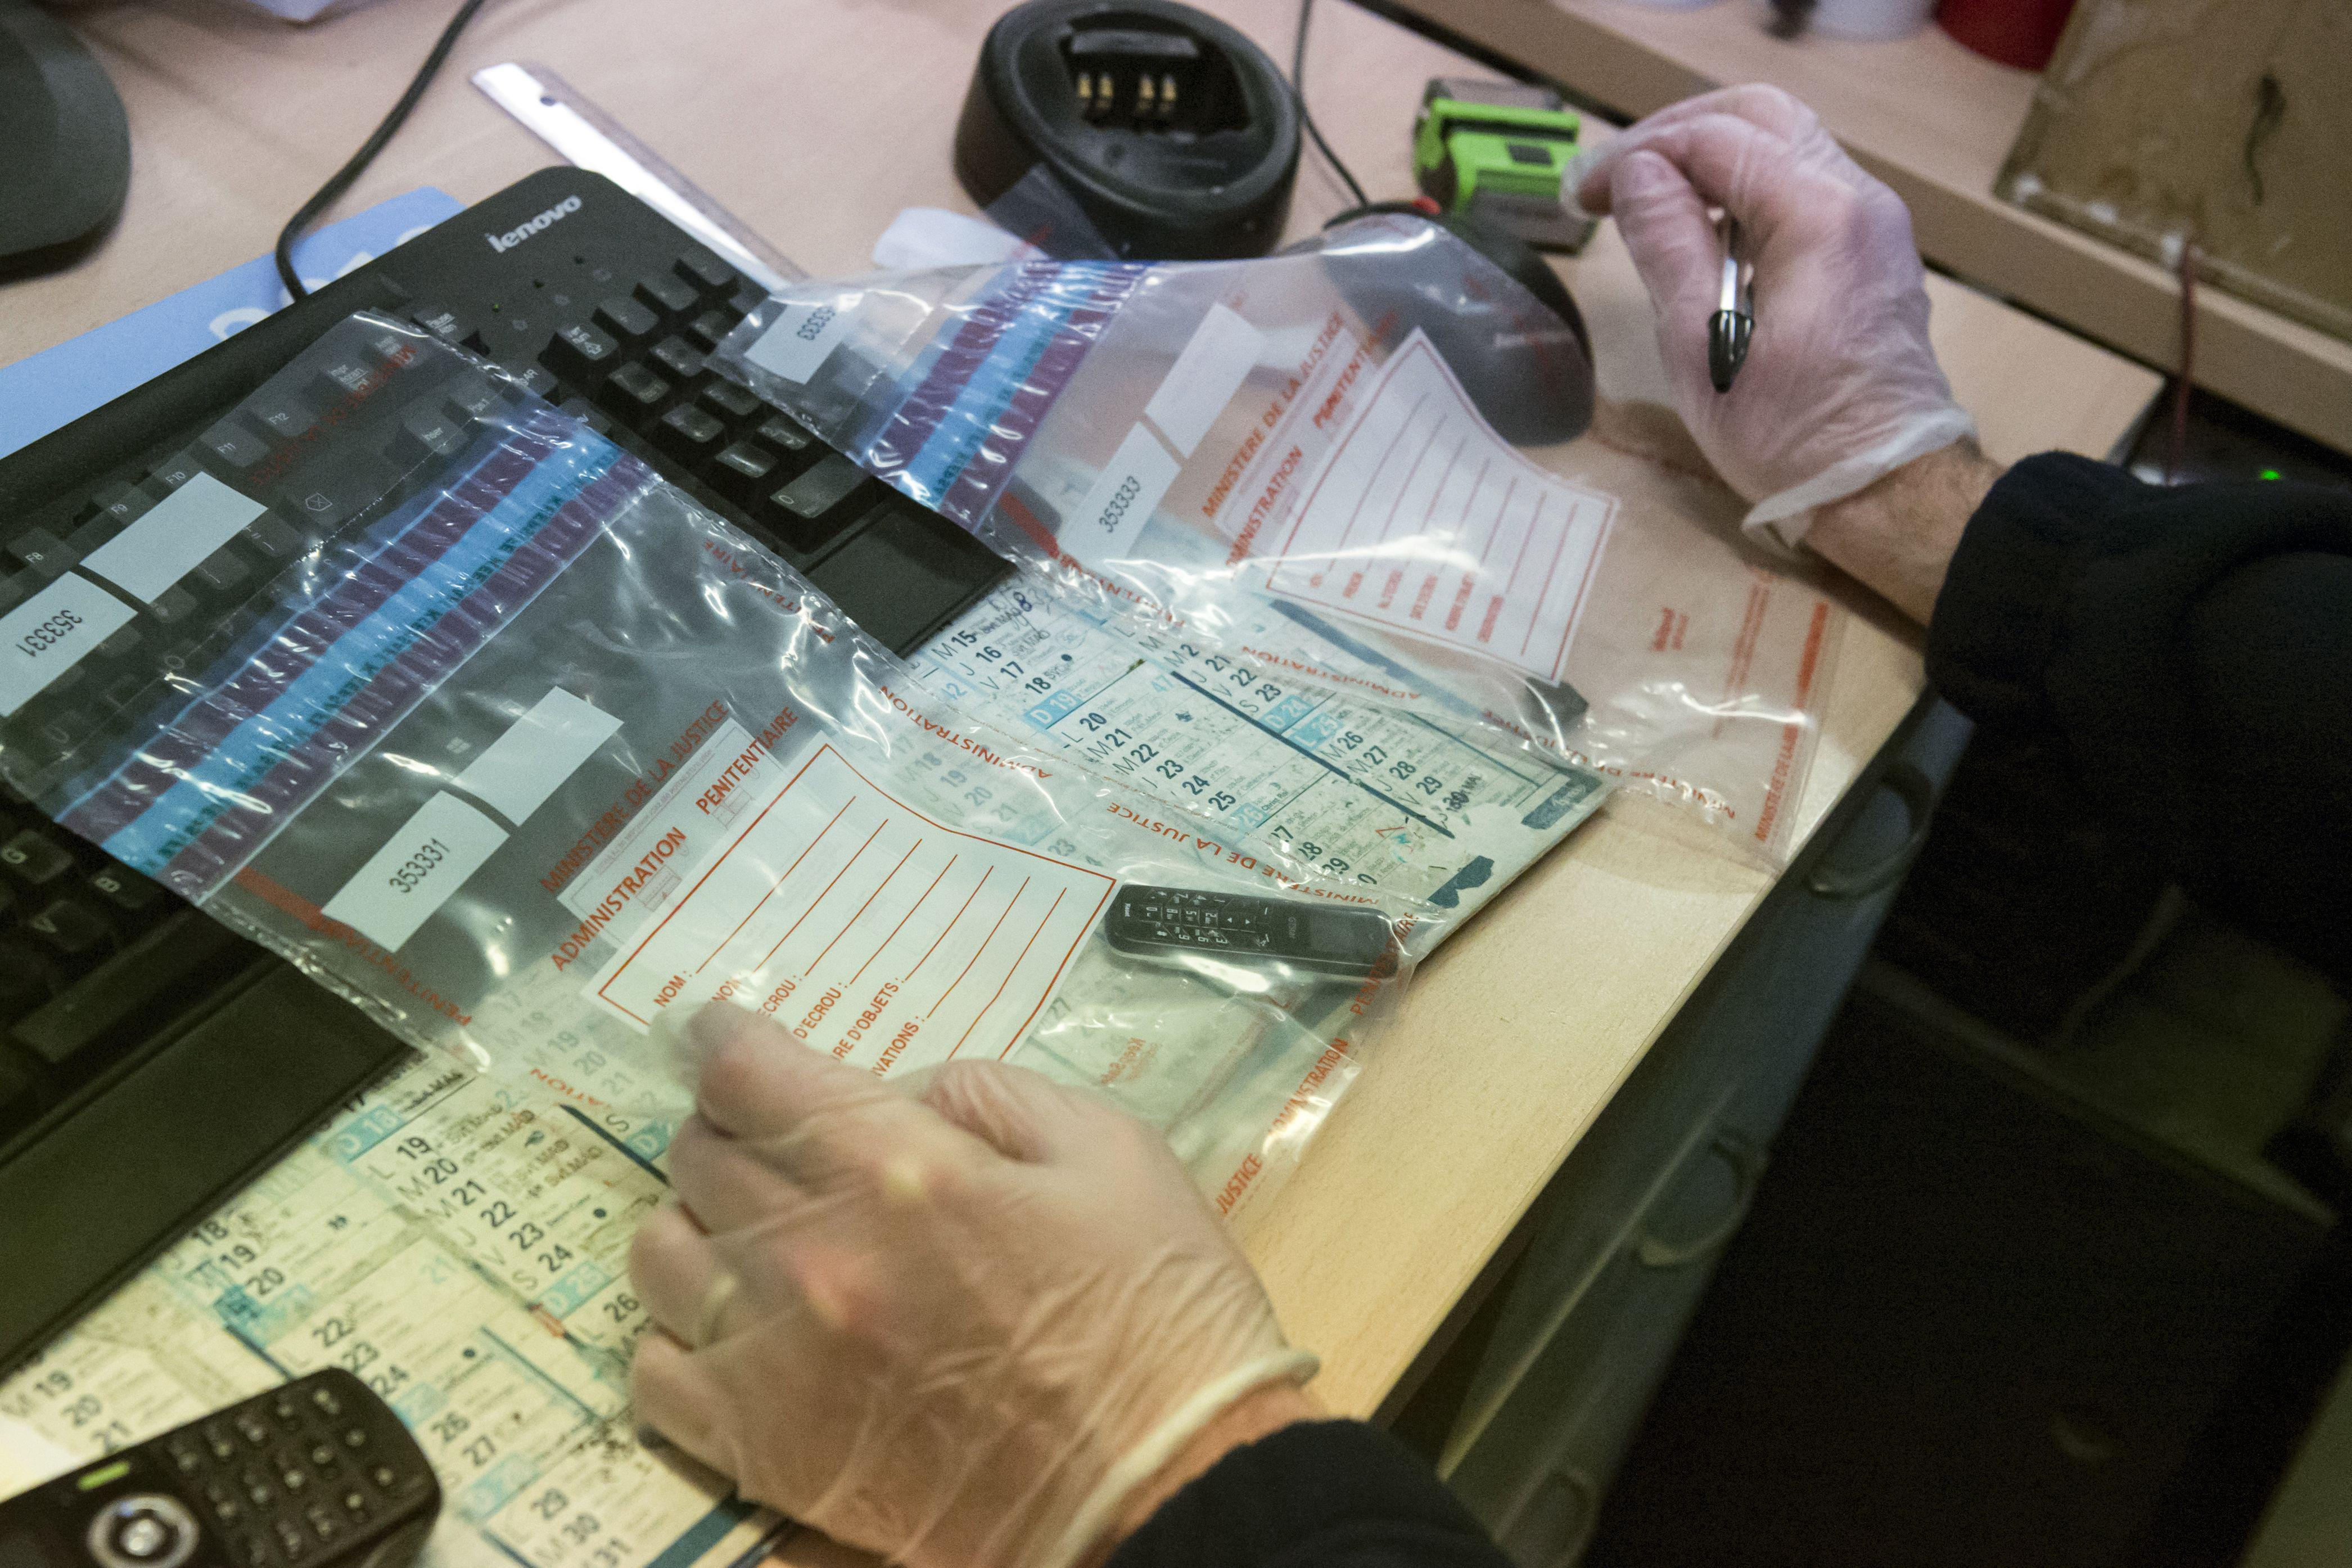 A prison supervisor registers a mobile phone found in a cell at the prison in Paris.